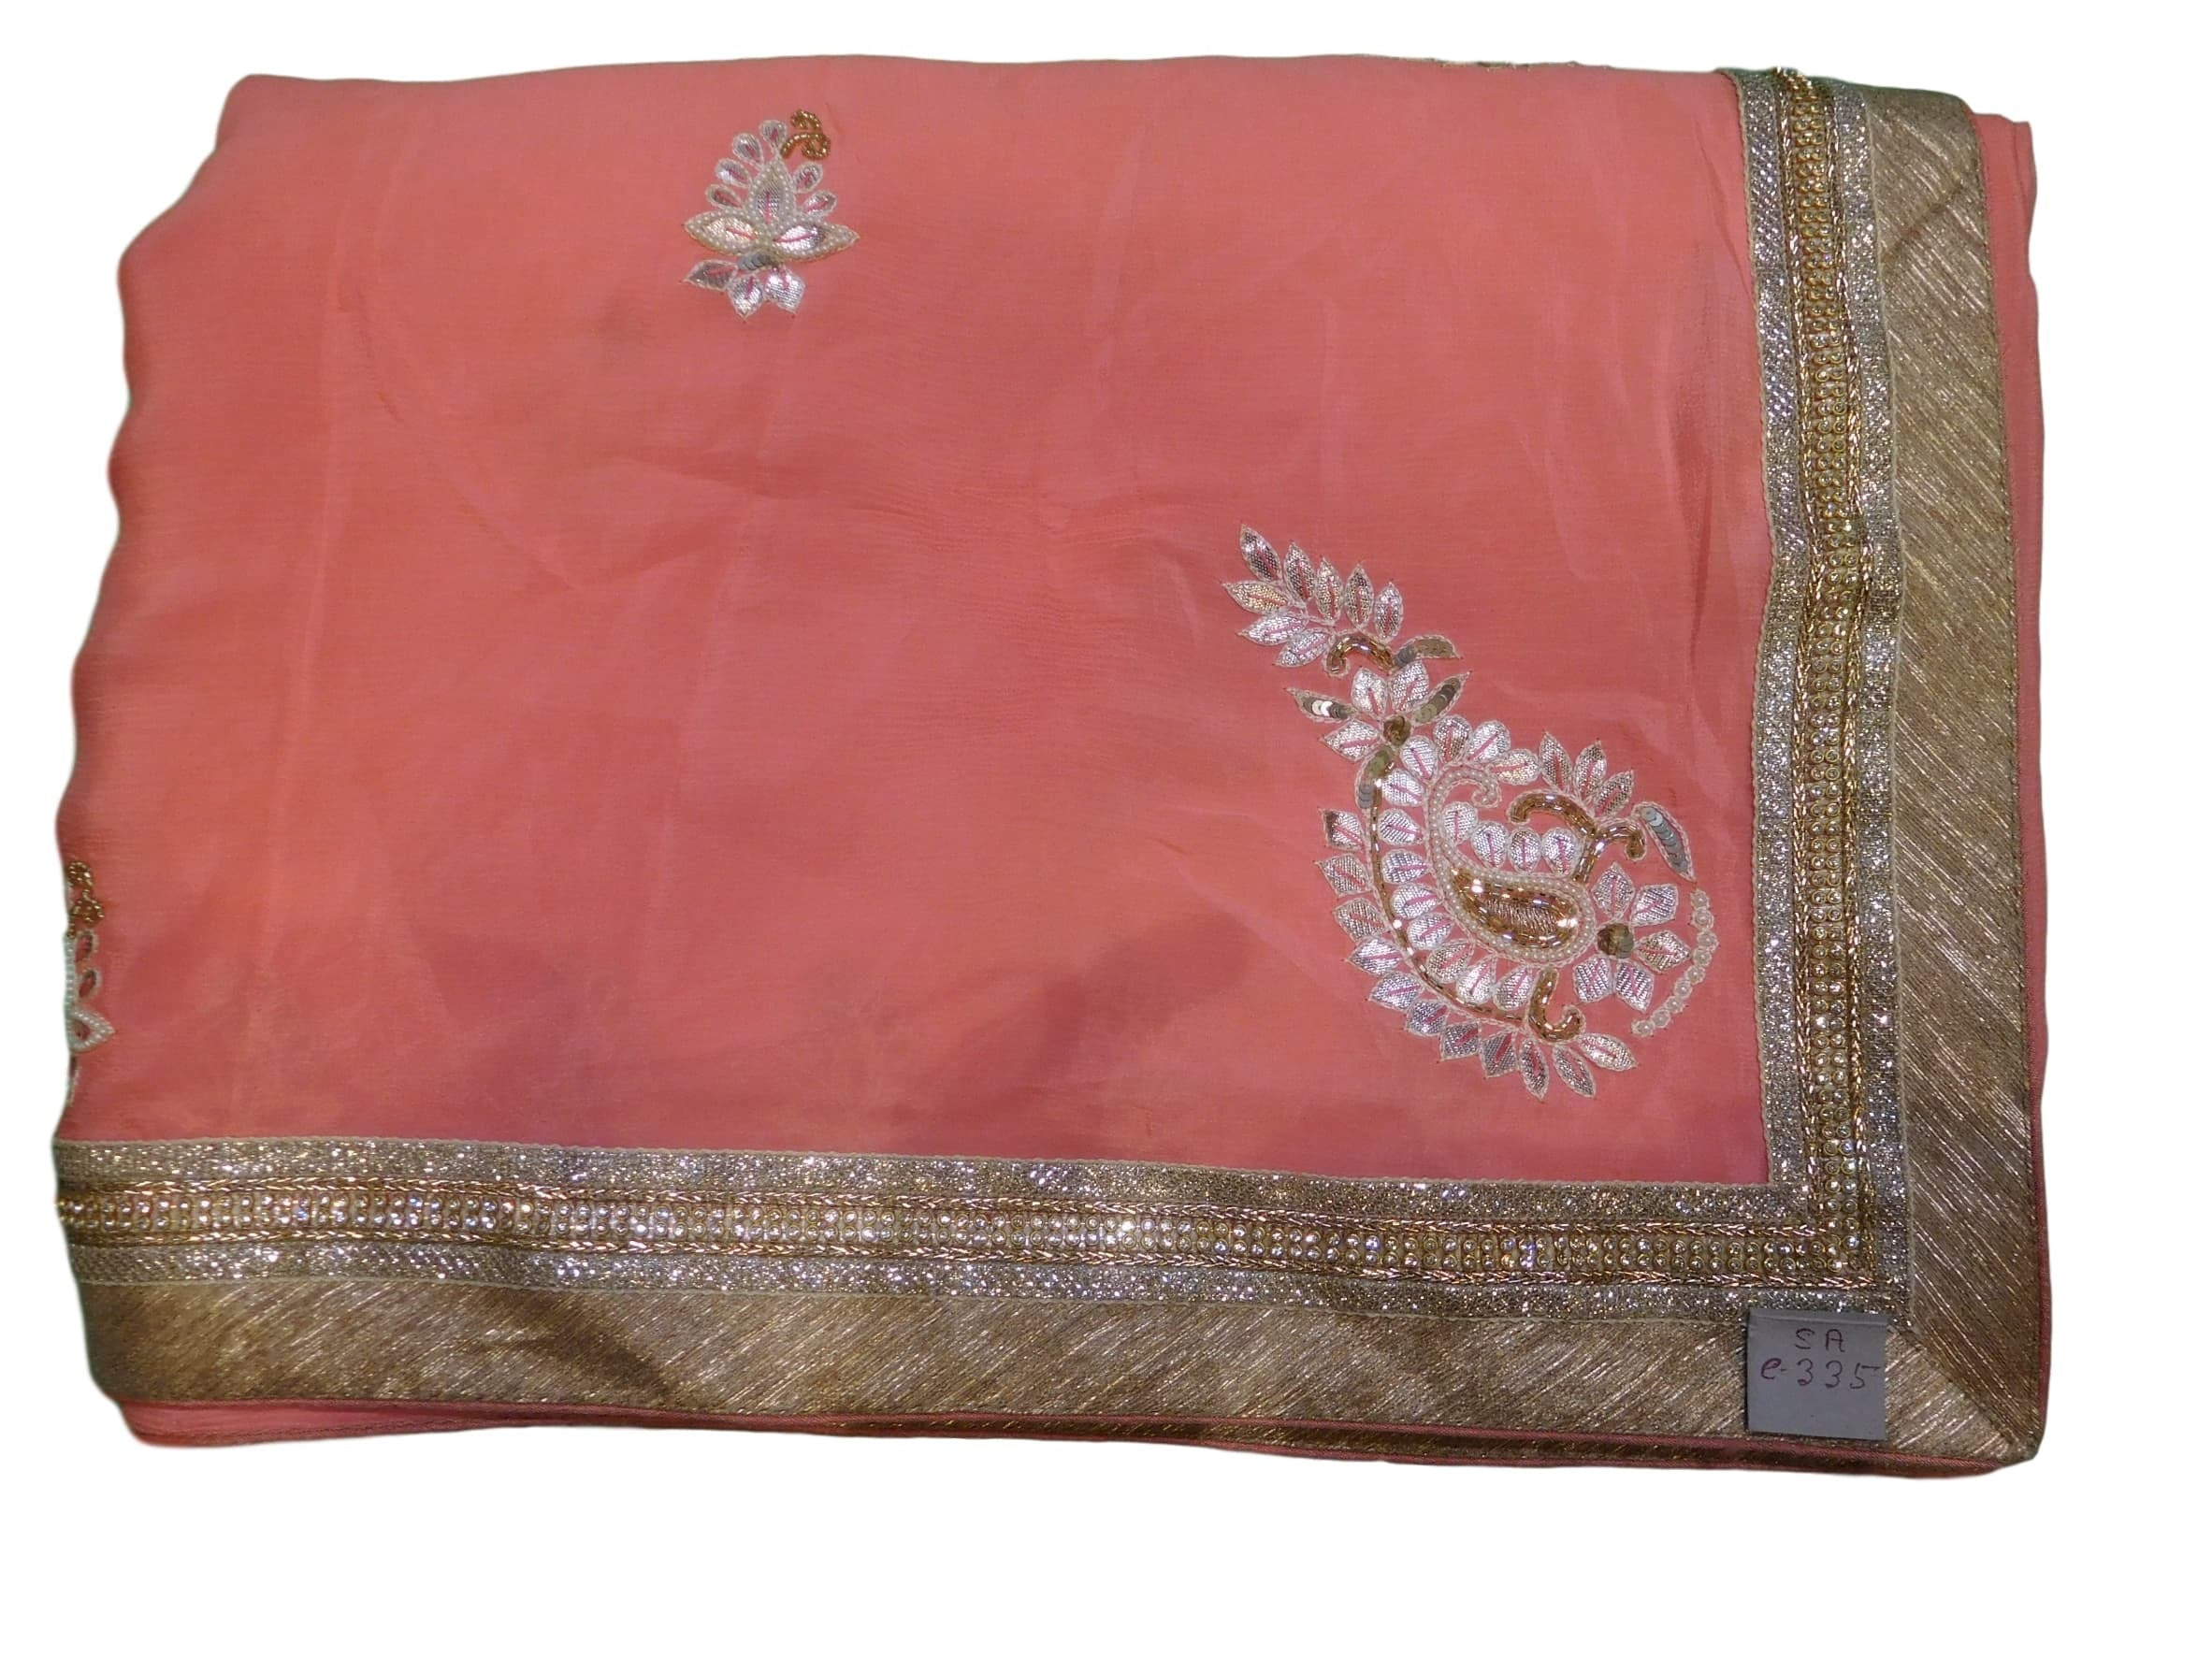 Peach Designer Georgette (Viscos) Hand Embroidery Work Sari Saree